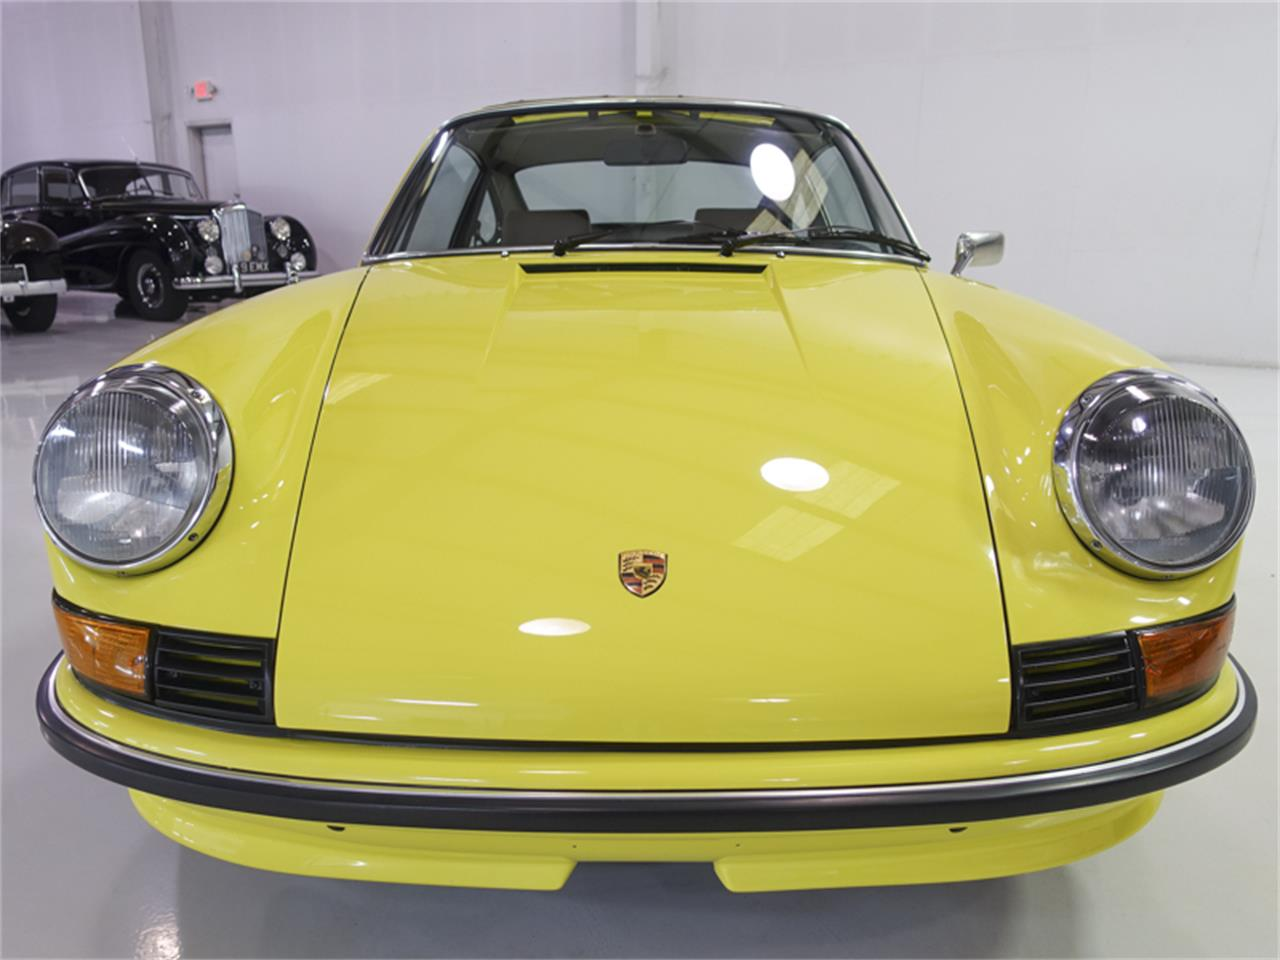 Large Picture of '73 Porsche 911S located in St. Louis Missouri Offered by Daniel Schmitt & Co. - PGTF